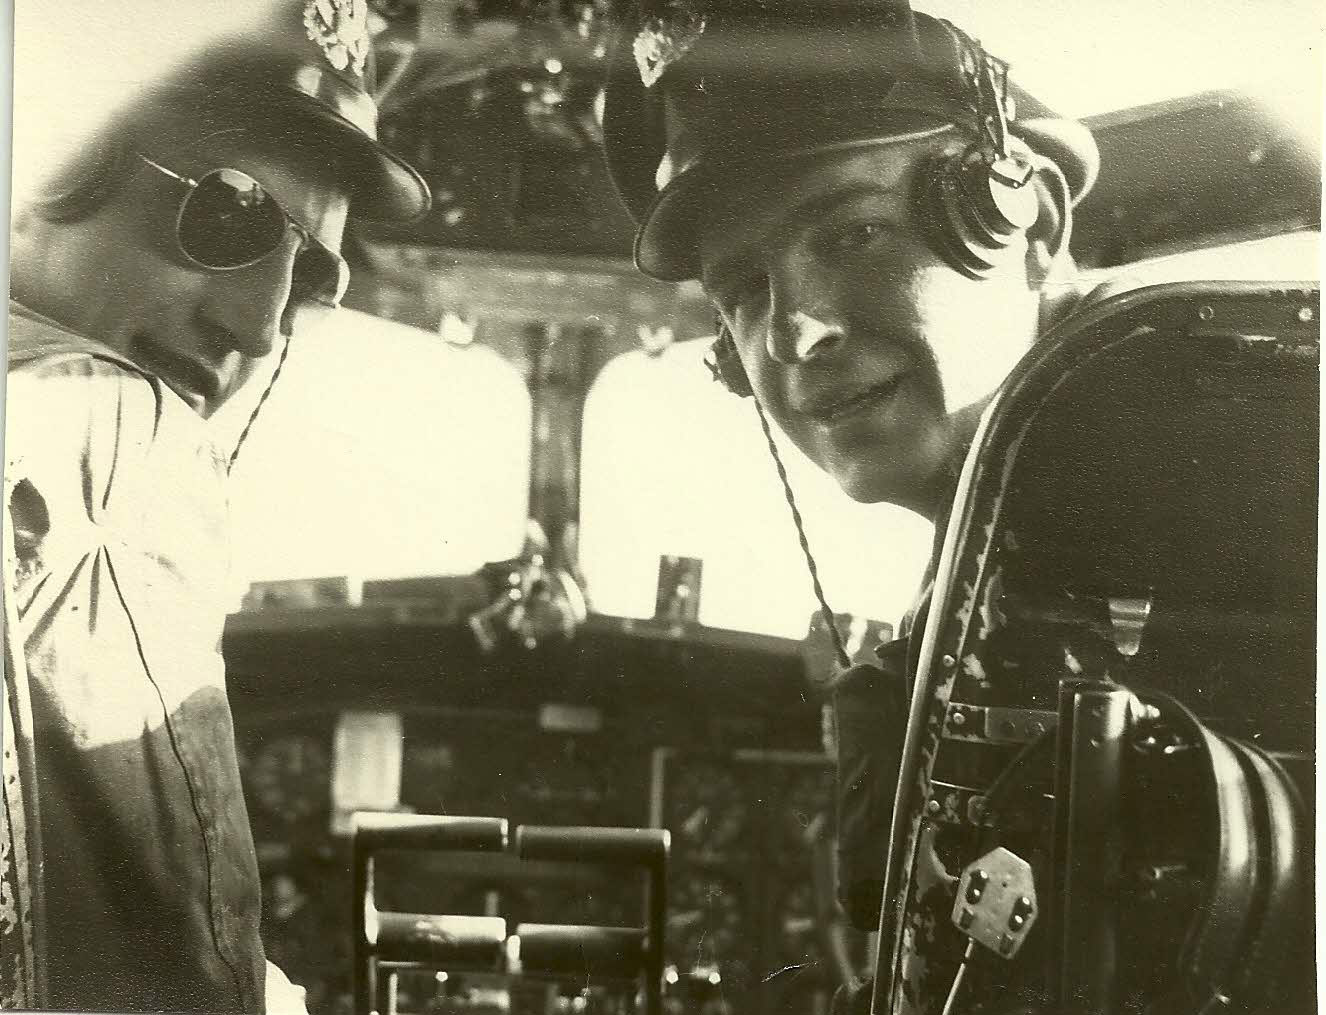 Dad as a pilot in the service.